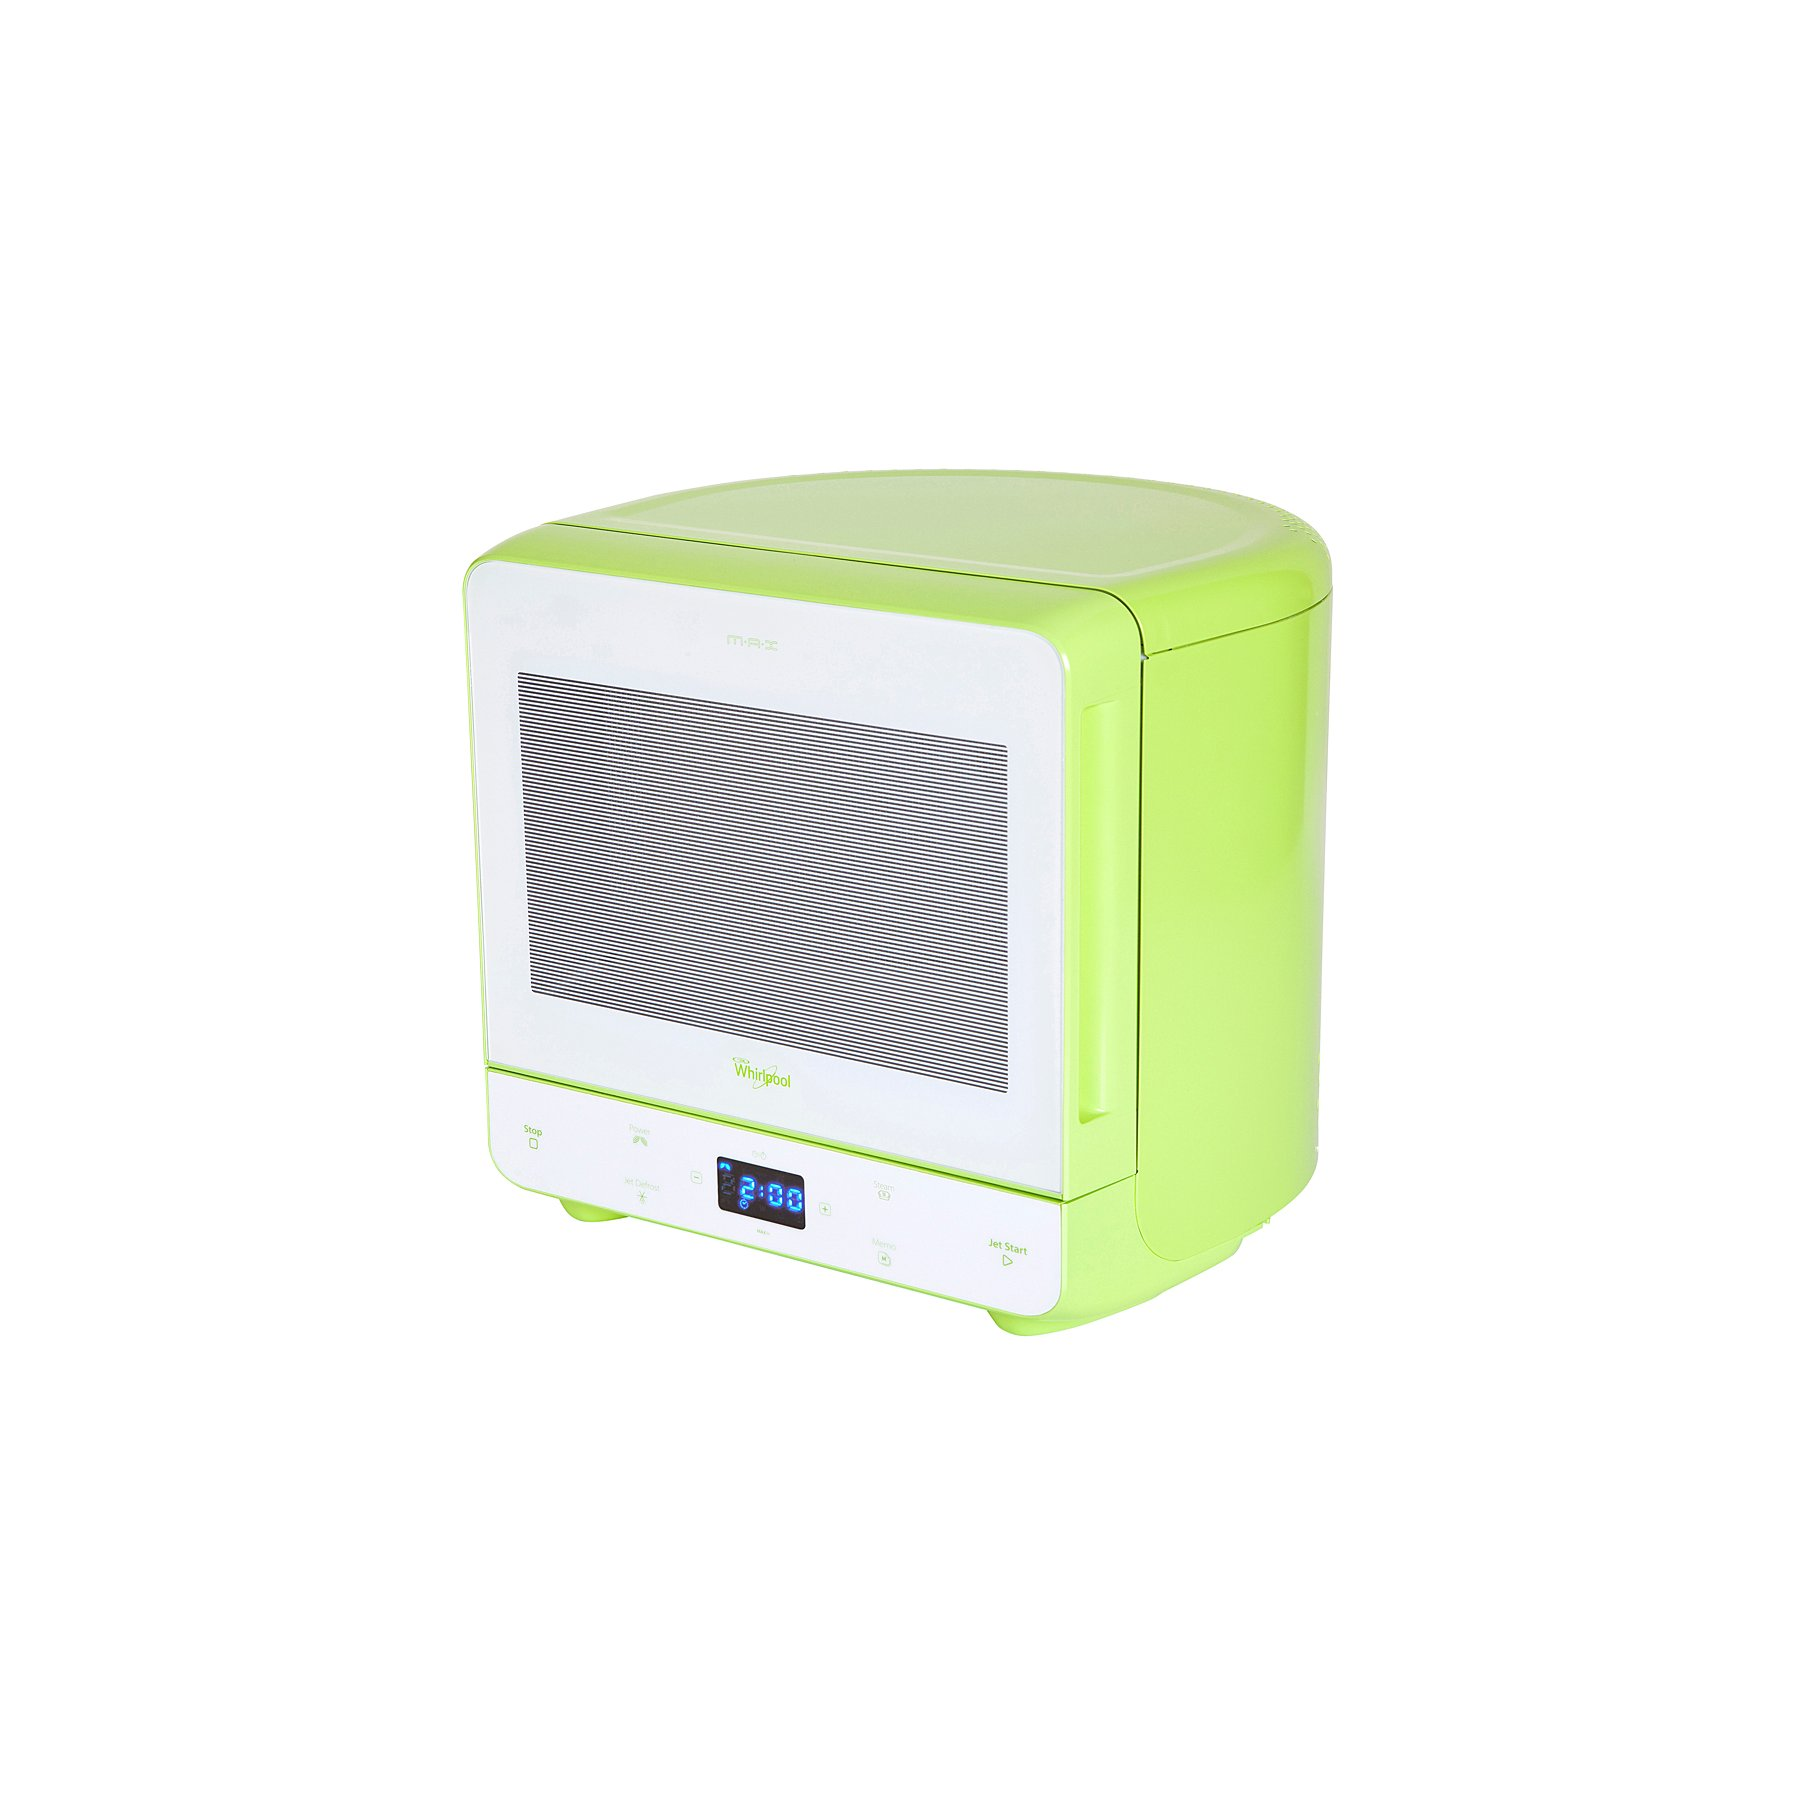 Max 35 13l 700w Microwave With Steam